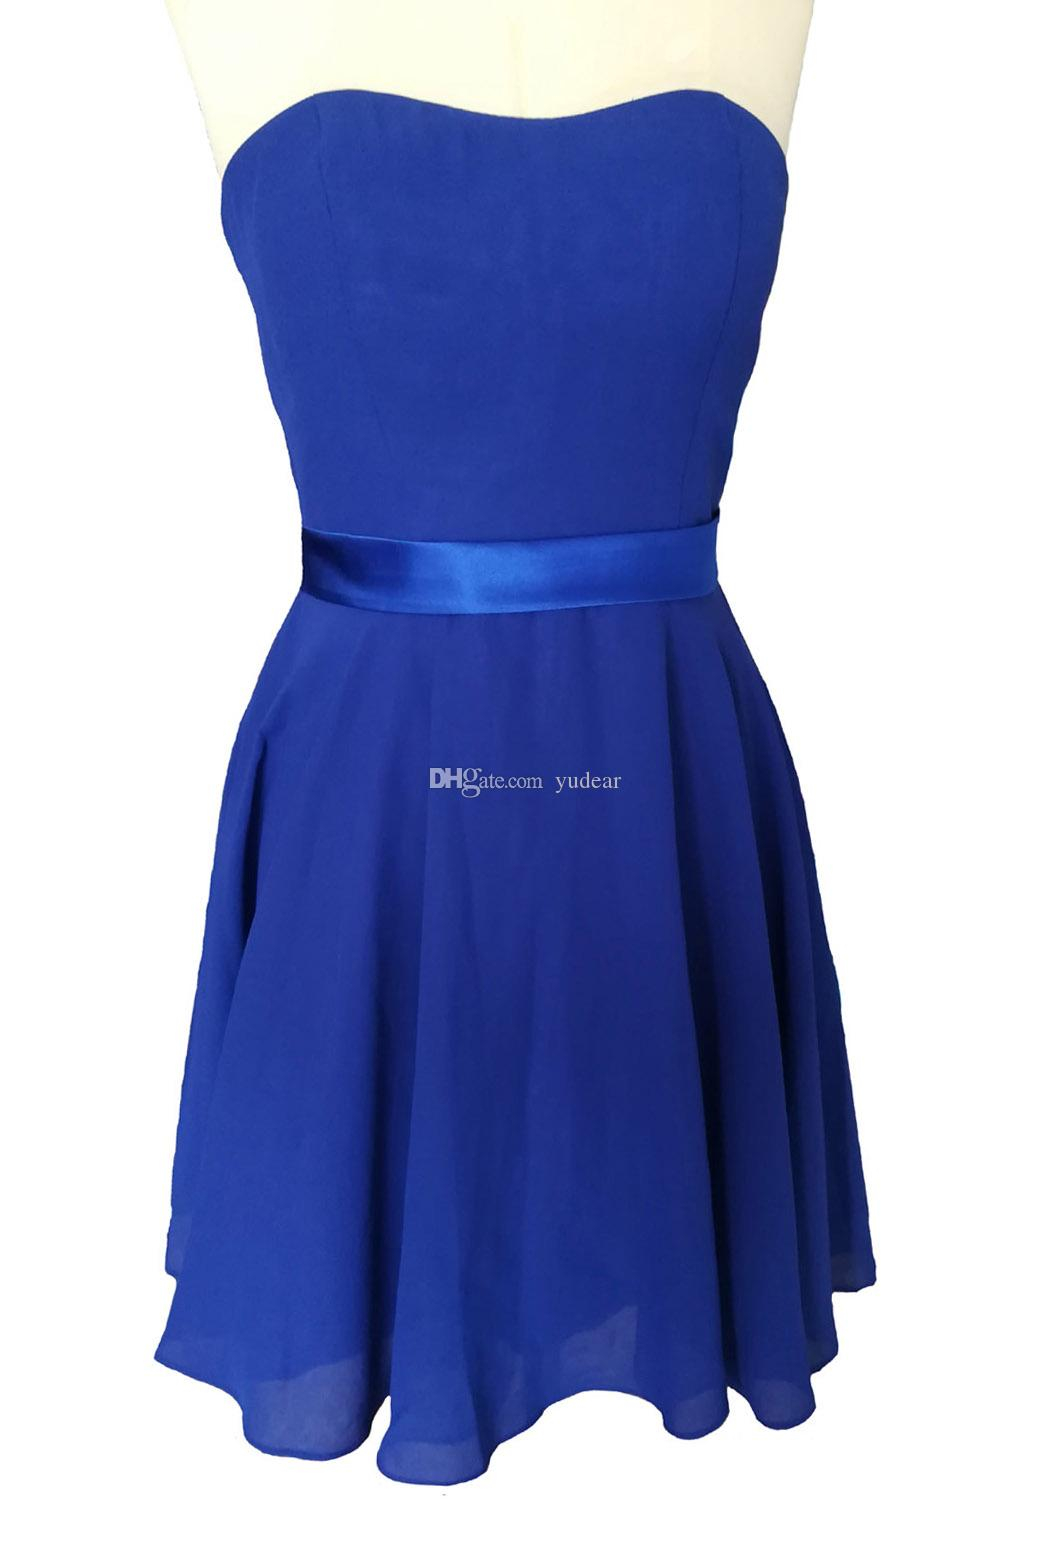 2019 Cheapest Royal Strapless Women Homecoming Dresses A-line Short Mini Cocktail Dresses Flowy Chiffon Backless Drawstring Prom Party Gowns